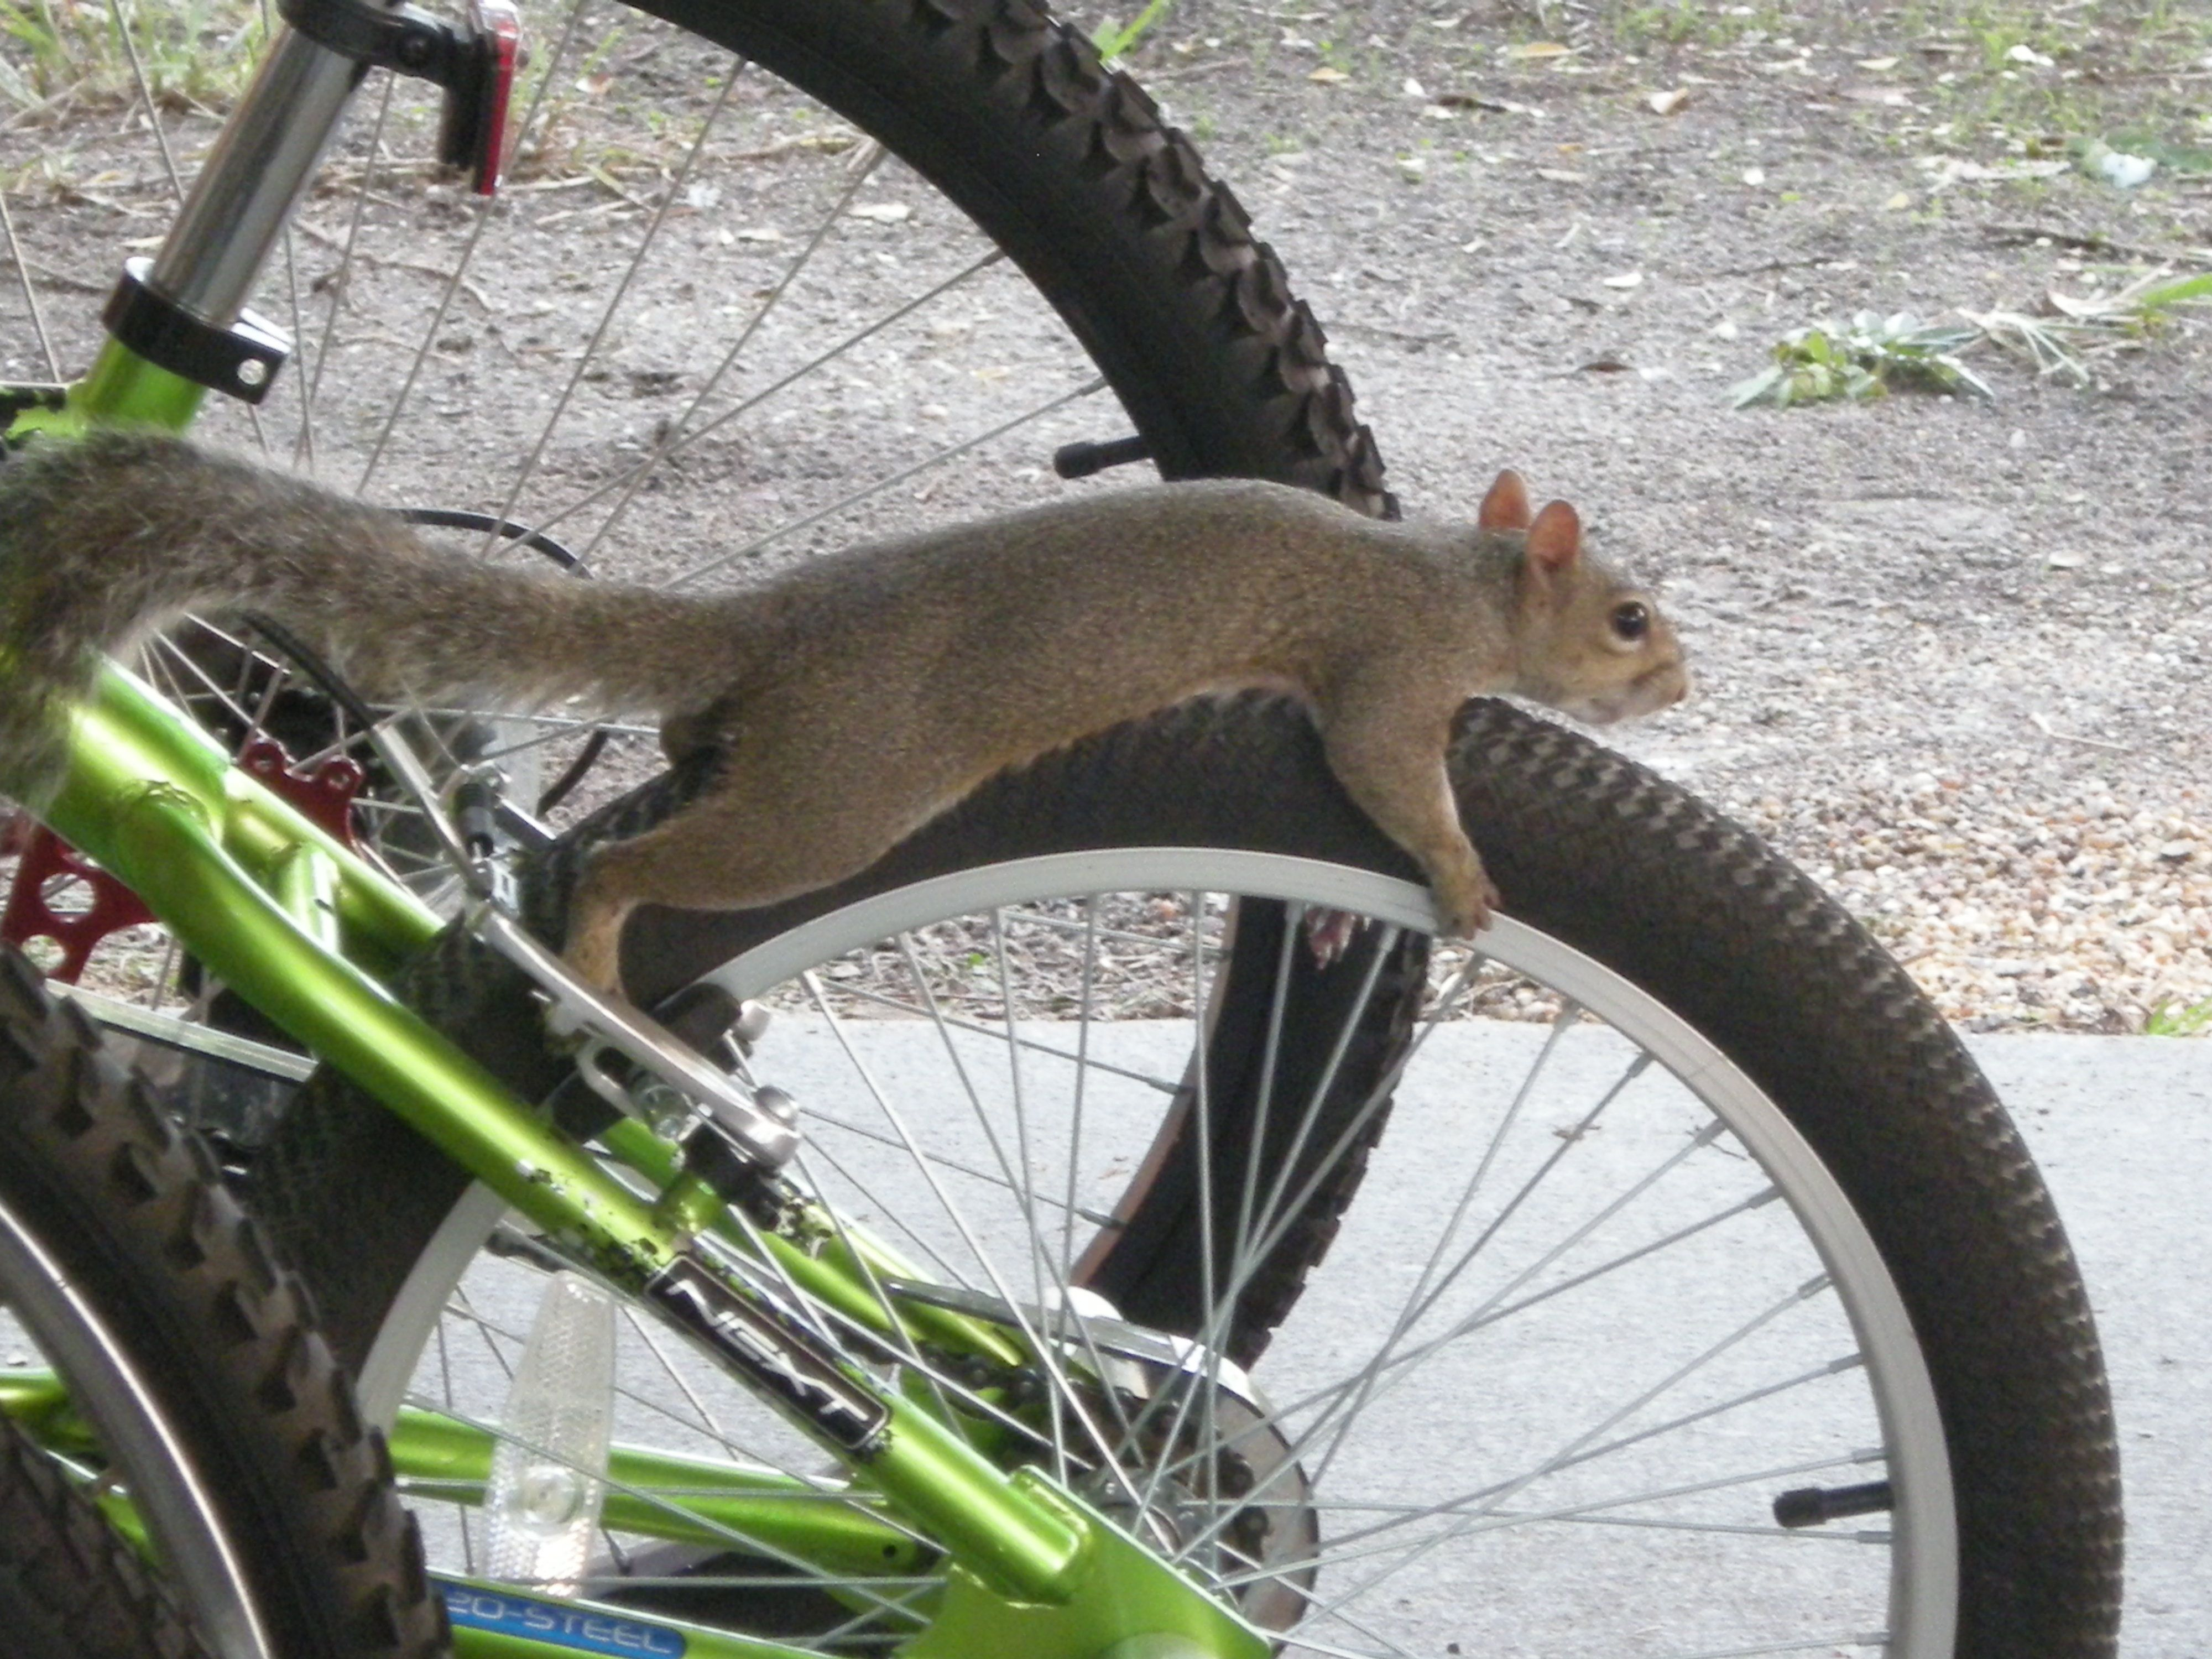 Rocky The Squirrel Ready For A Bike Ride Photography And Videos